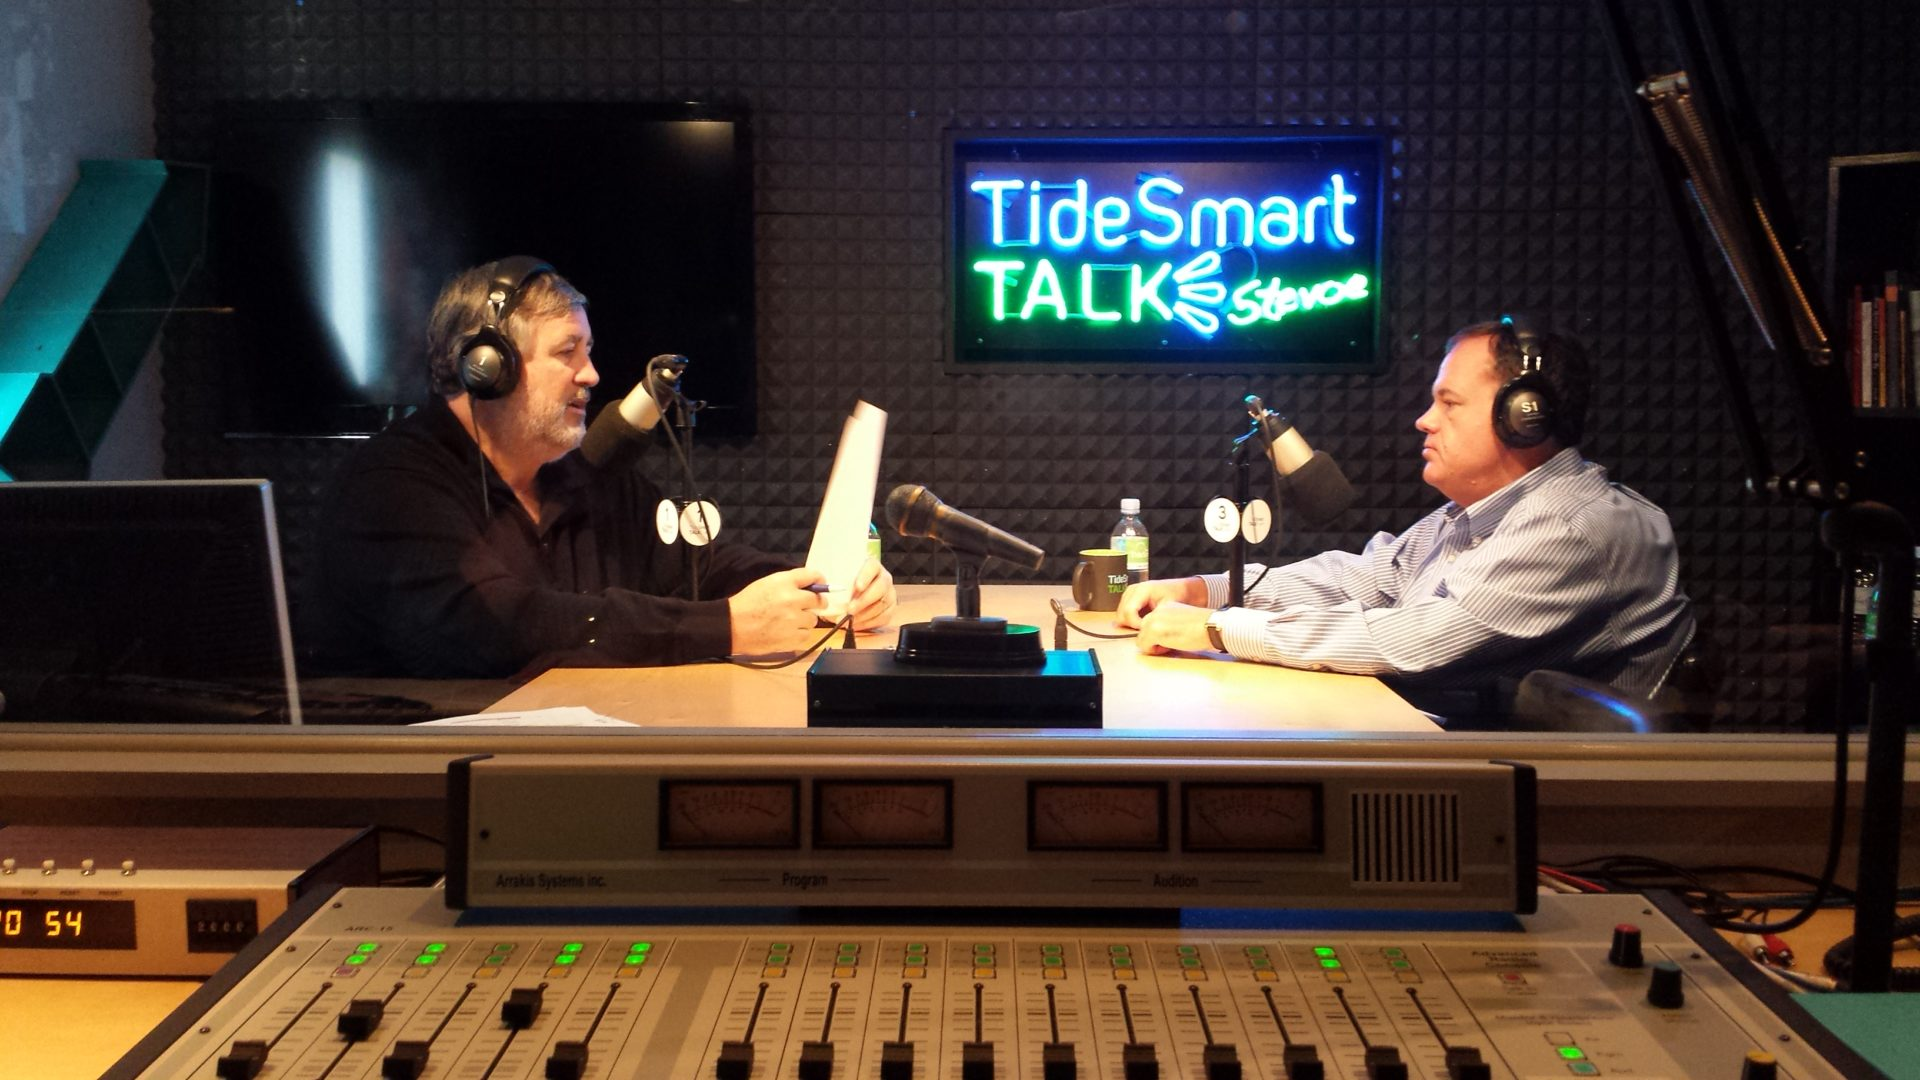 Host of TideSmart Talk with Stevoe, Steve Woods, welcomed Portland City Manager, Jon Jennings (at right).